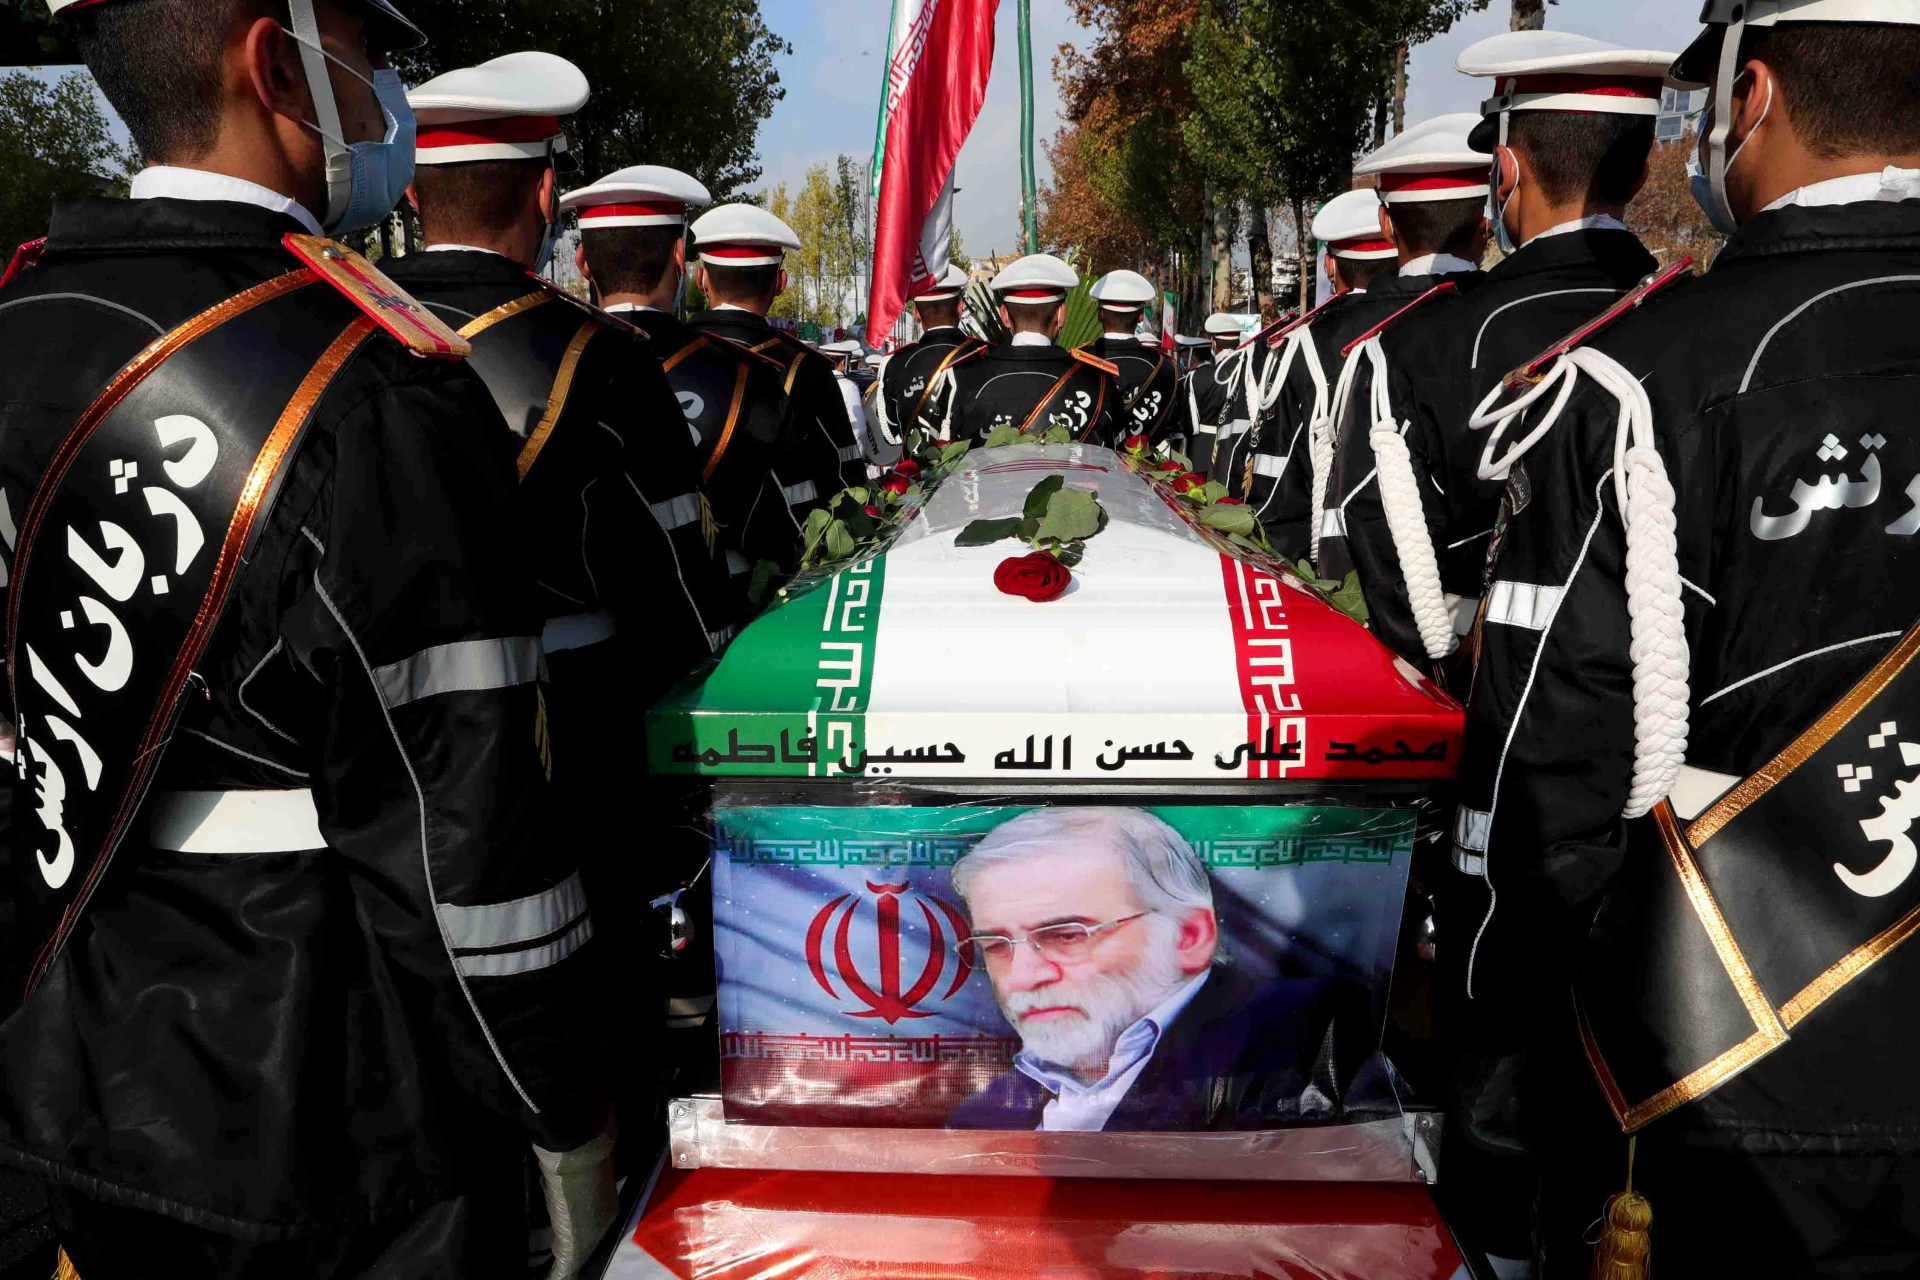 Iranian forces carry the coffin of nuclear scientist Mohsen Fakhrizadeh in Tehran (Reuters)